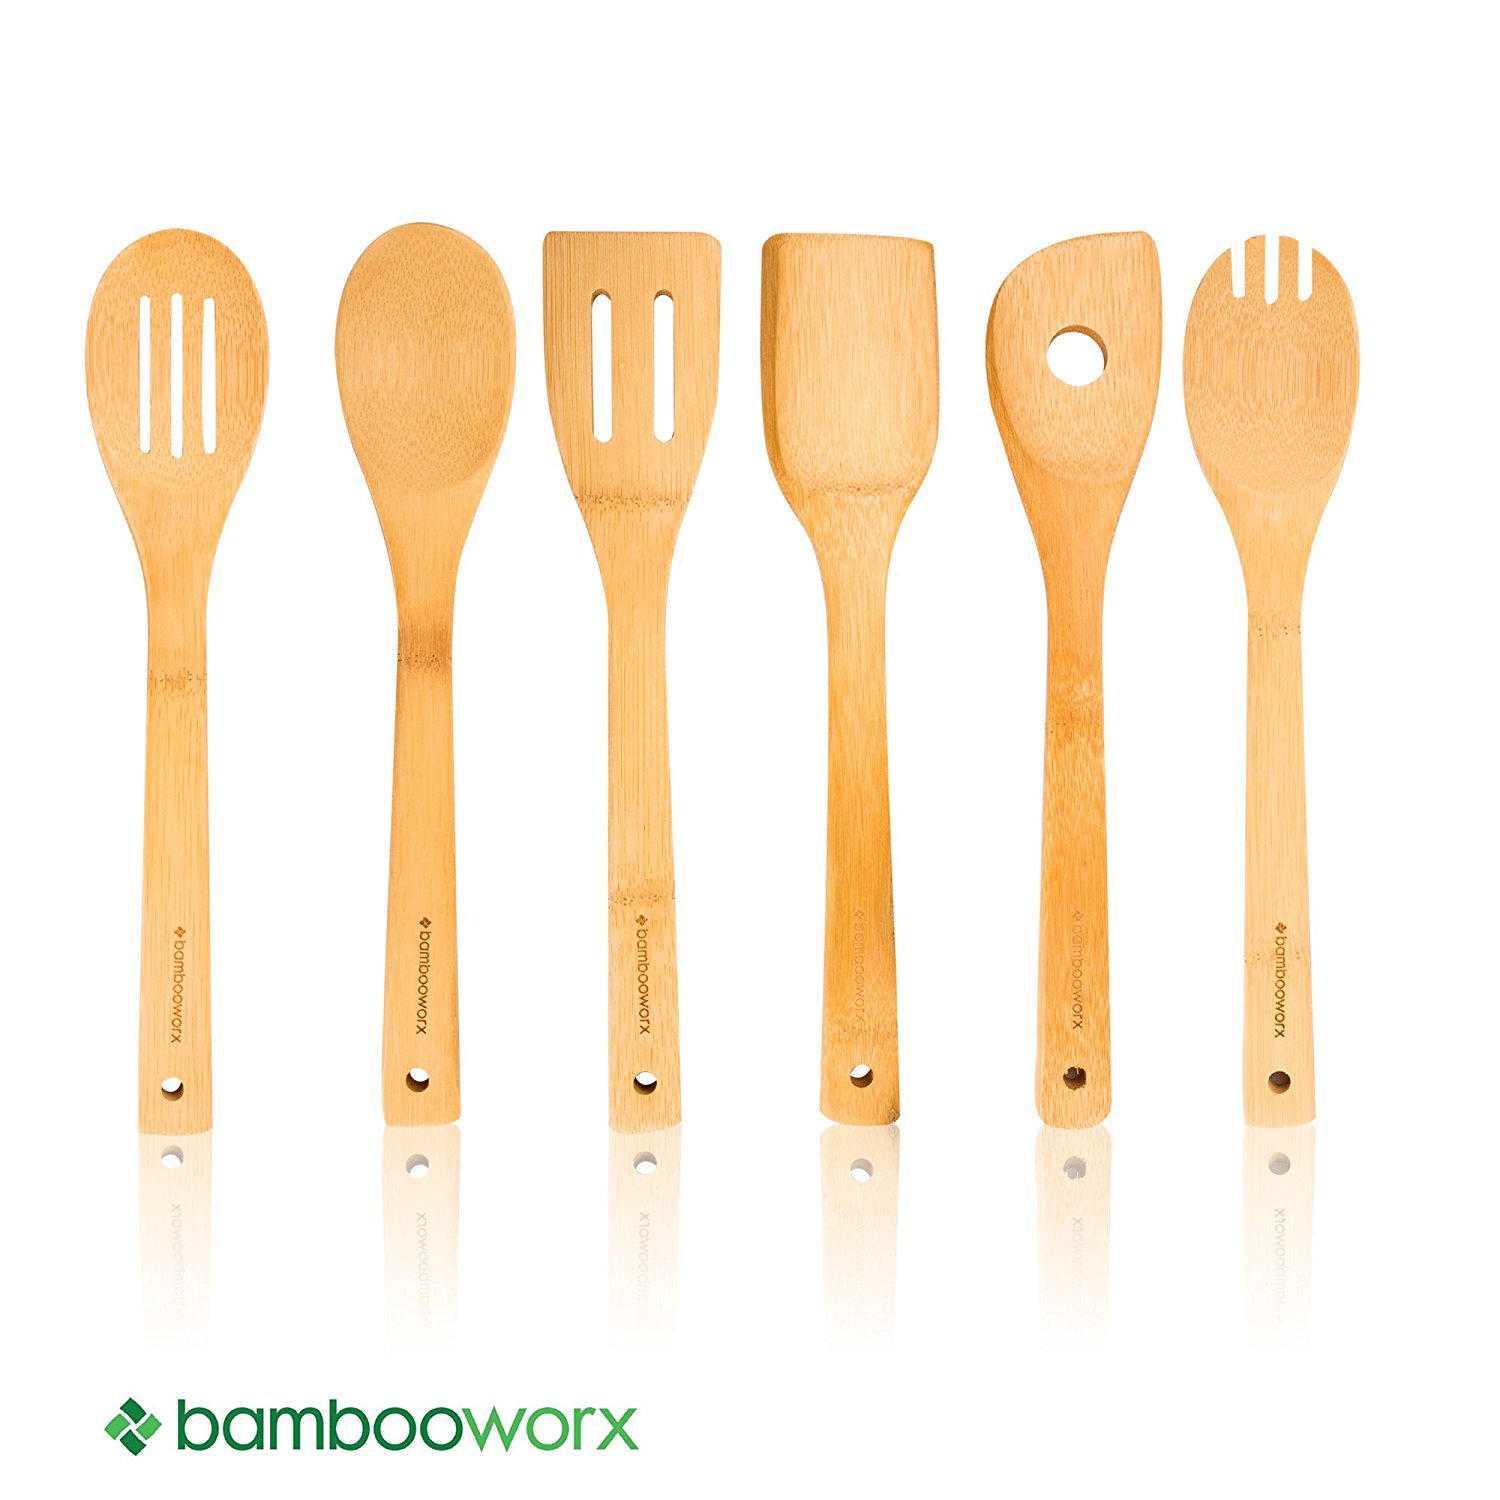 Bambooworx Bamboo Cooking Utensils